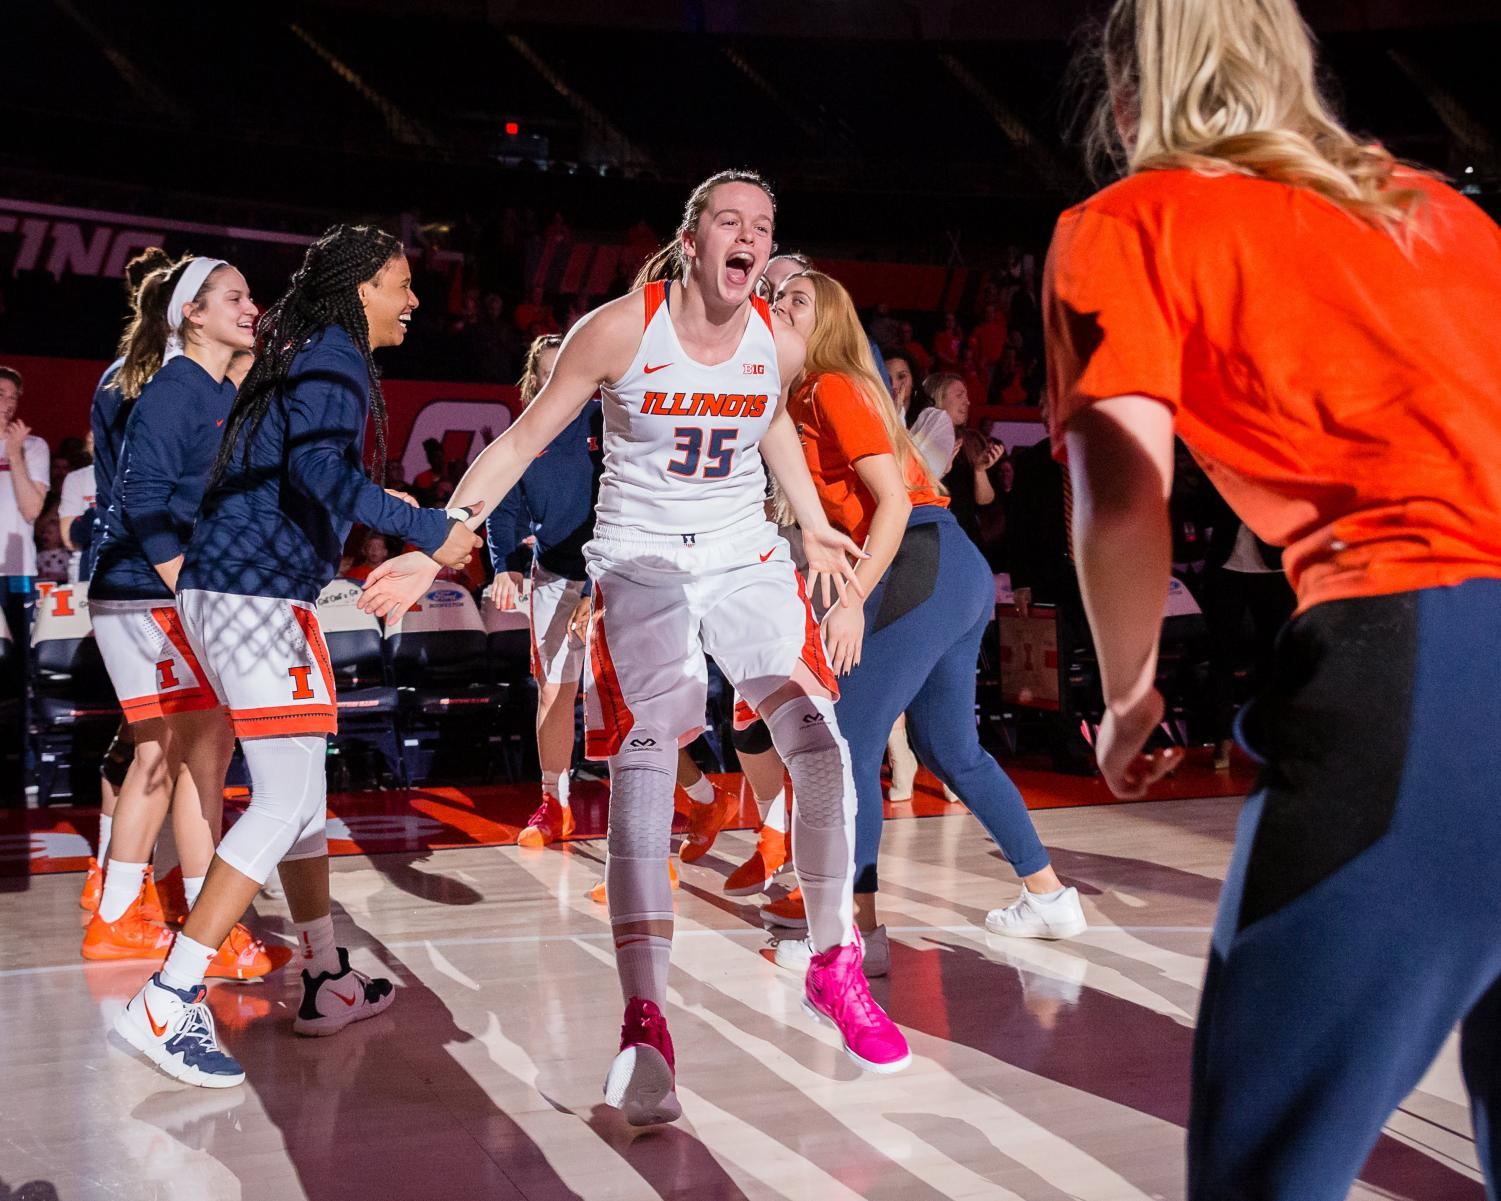 Illinois forward Alex Wittinger high-fives her teammates as she is announced for the starting lineup before the game against Penn State at the State Farm Center on Feb. 24. The Illini lost 76-65.